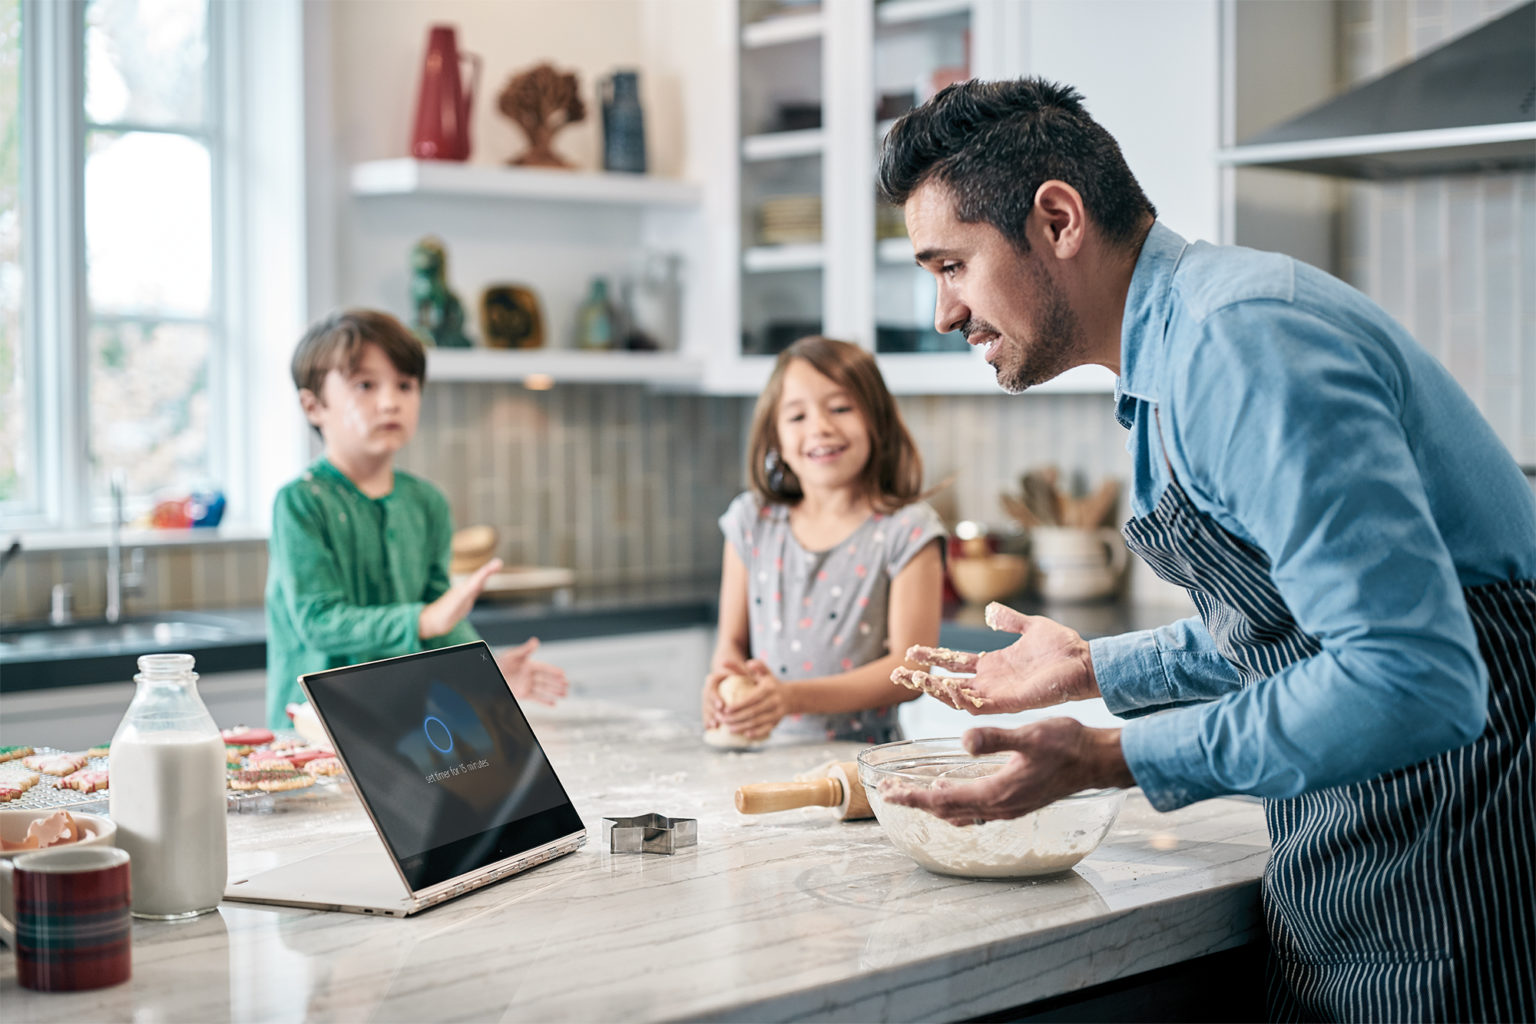 Image of Dad Baking with Kids and Device